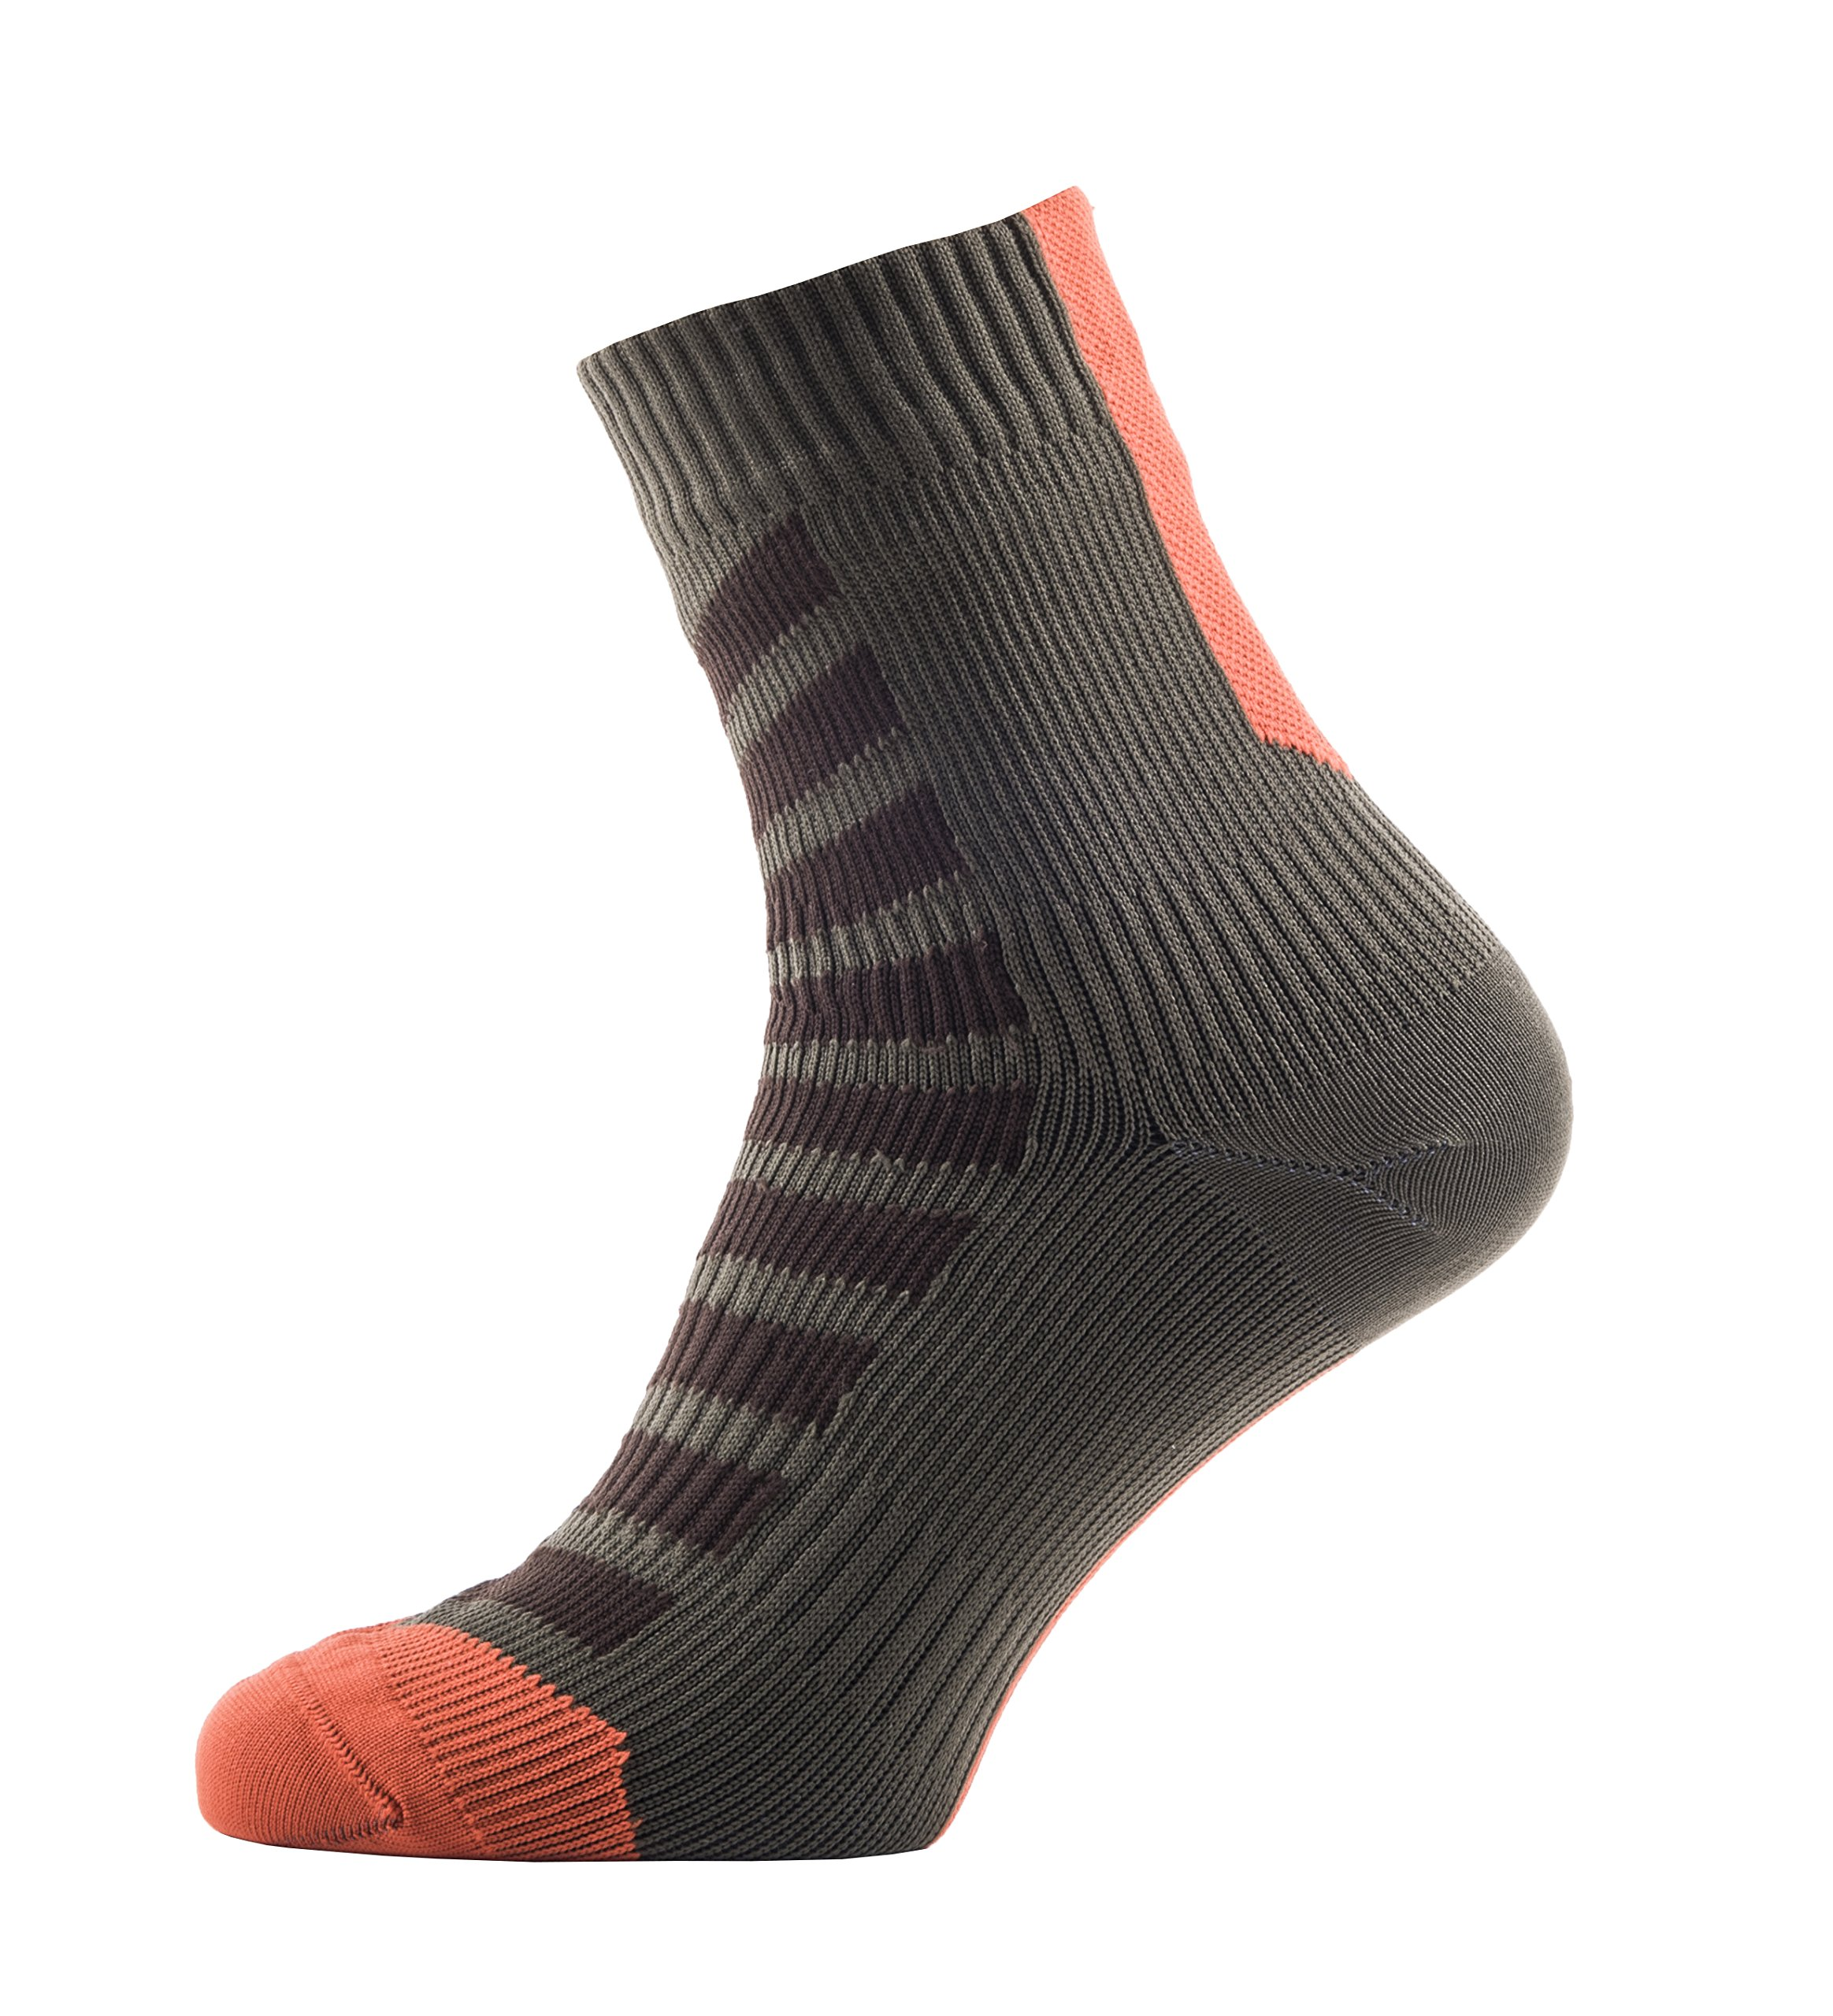 SEALSKINZ MTB Ankle Socks with Hydrostop, Small - DK Olive/Mud/Orange. With a Helicase brand sock ring by SEALSKINZ